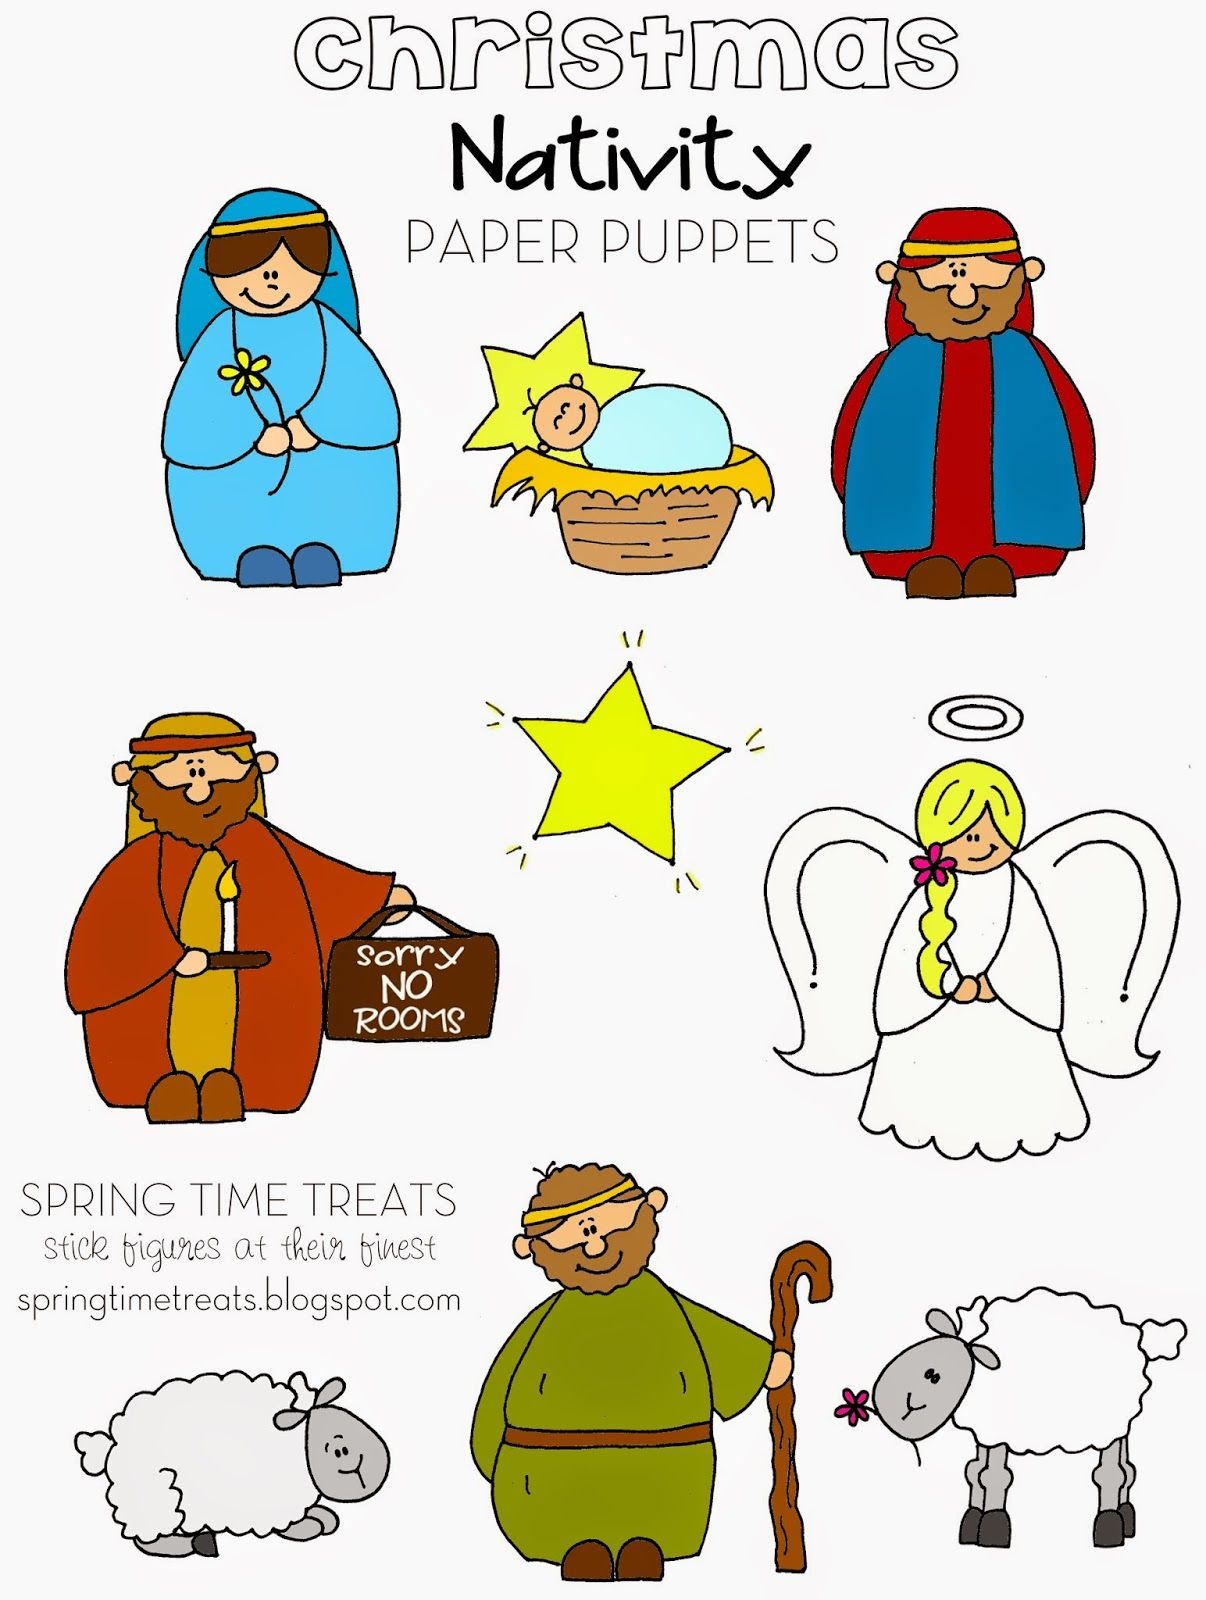 graphic regarding Nativity Clipart Free Printable named Spring Season Snacks: Nativity paper puppets - Absolutely free printables